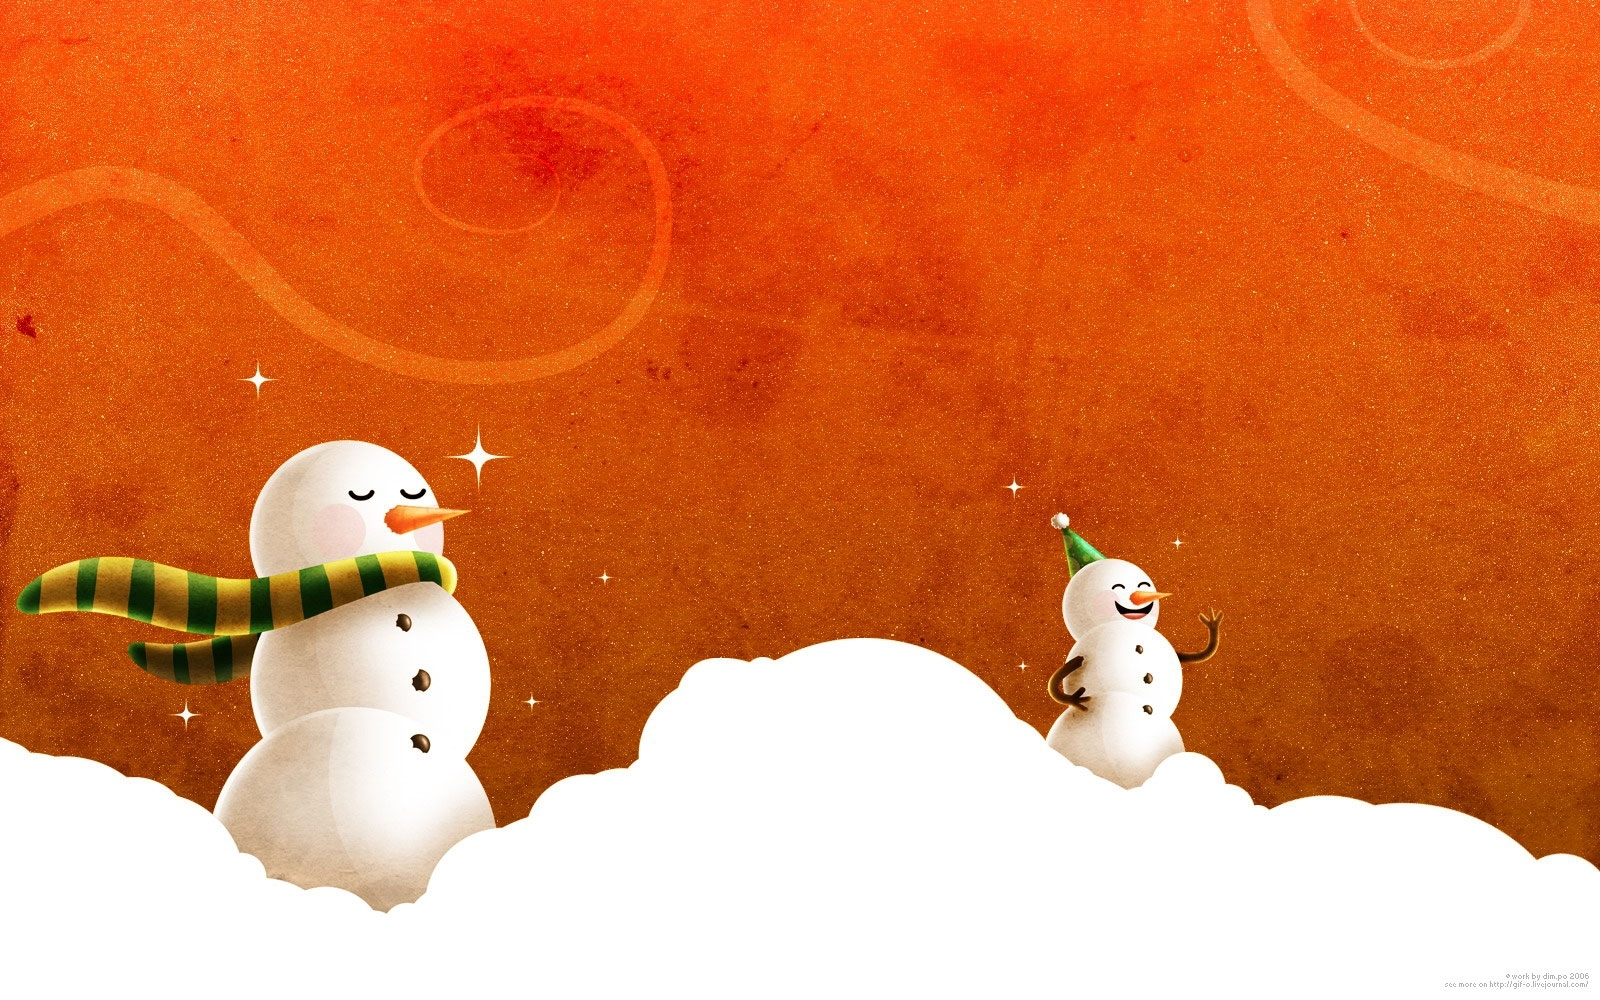 snowman HD Wallpaper